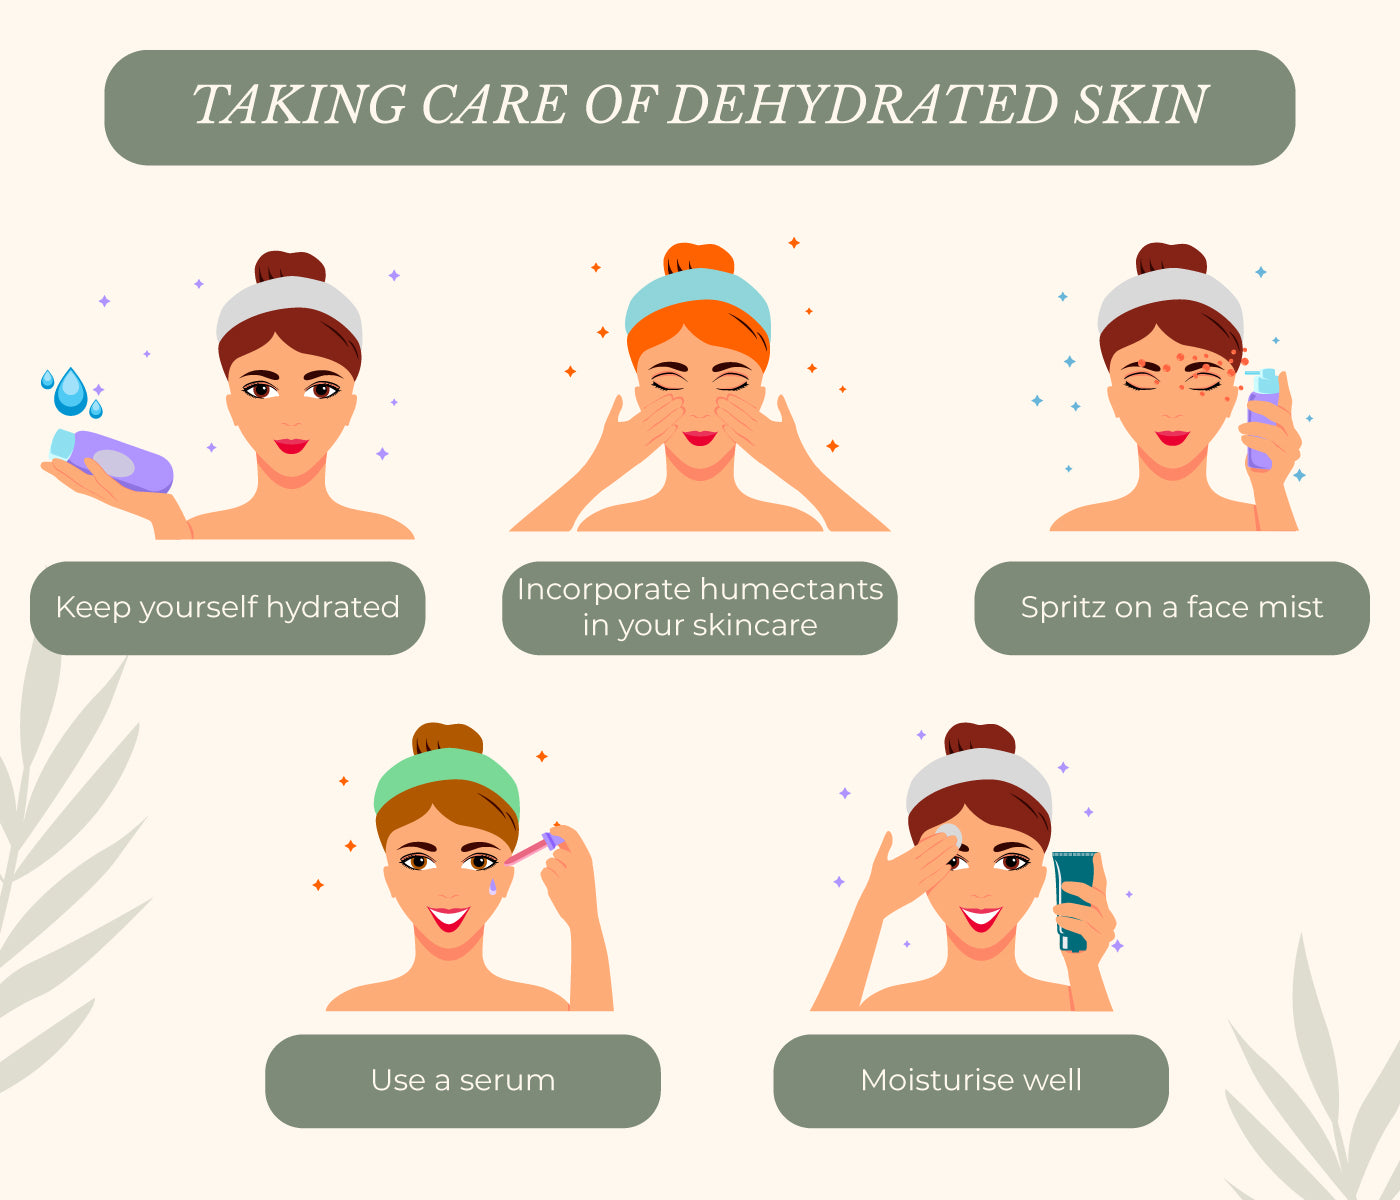 This is an image of taking care of dehydrated skin on www.sublimelife.in.